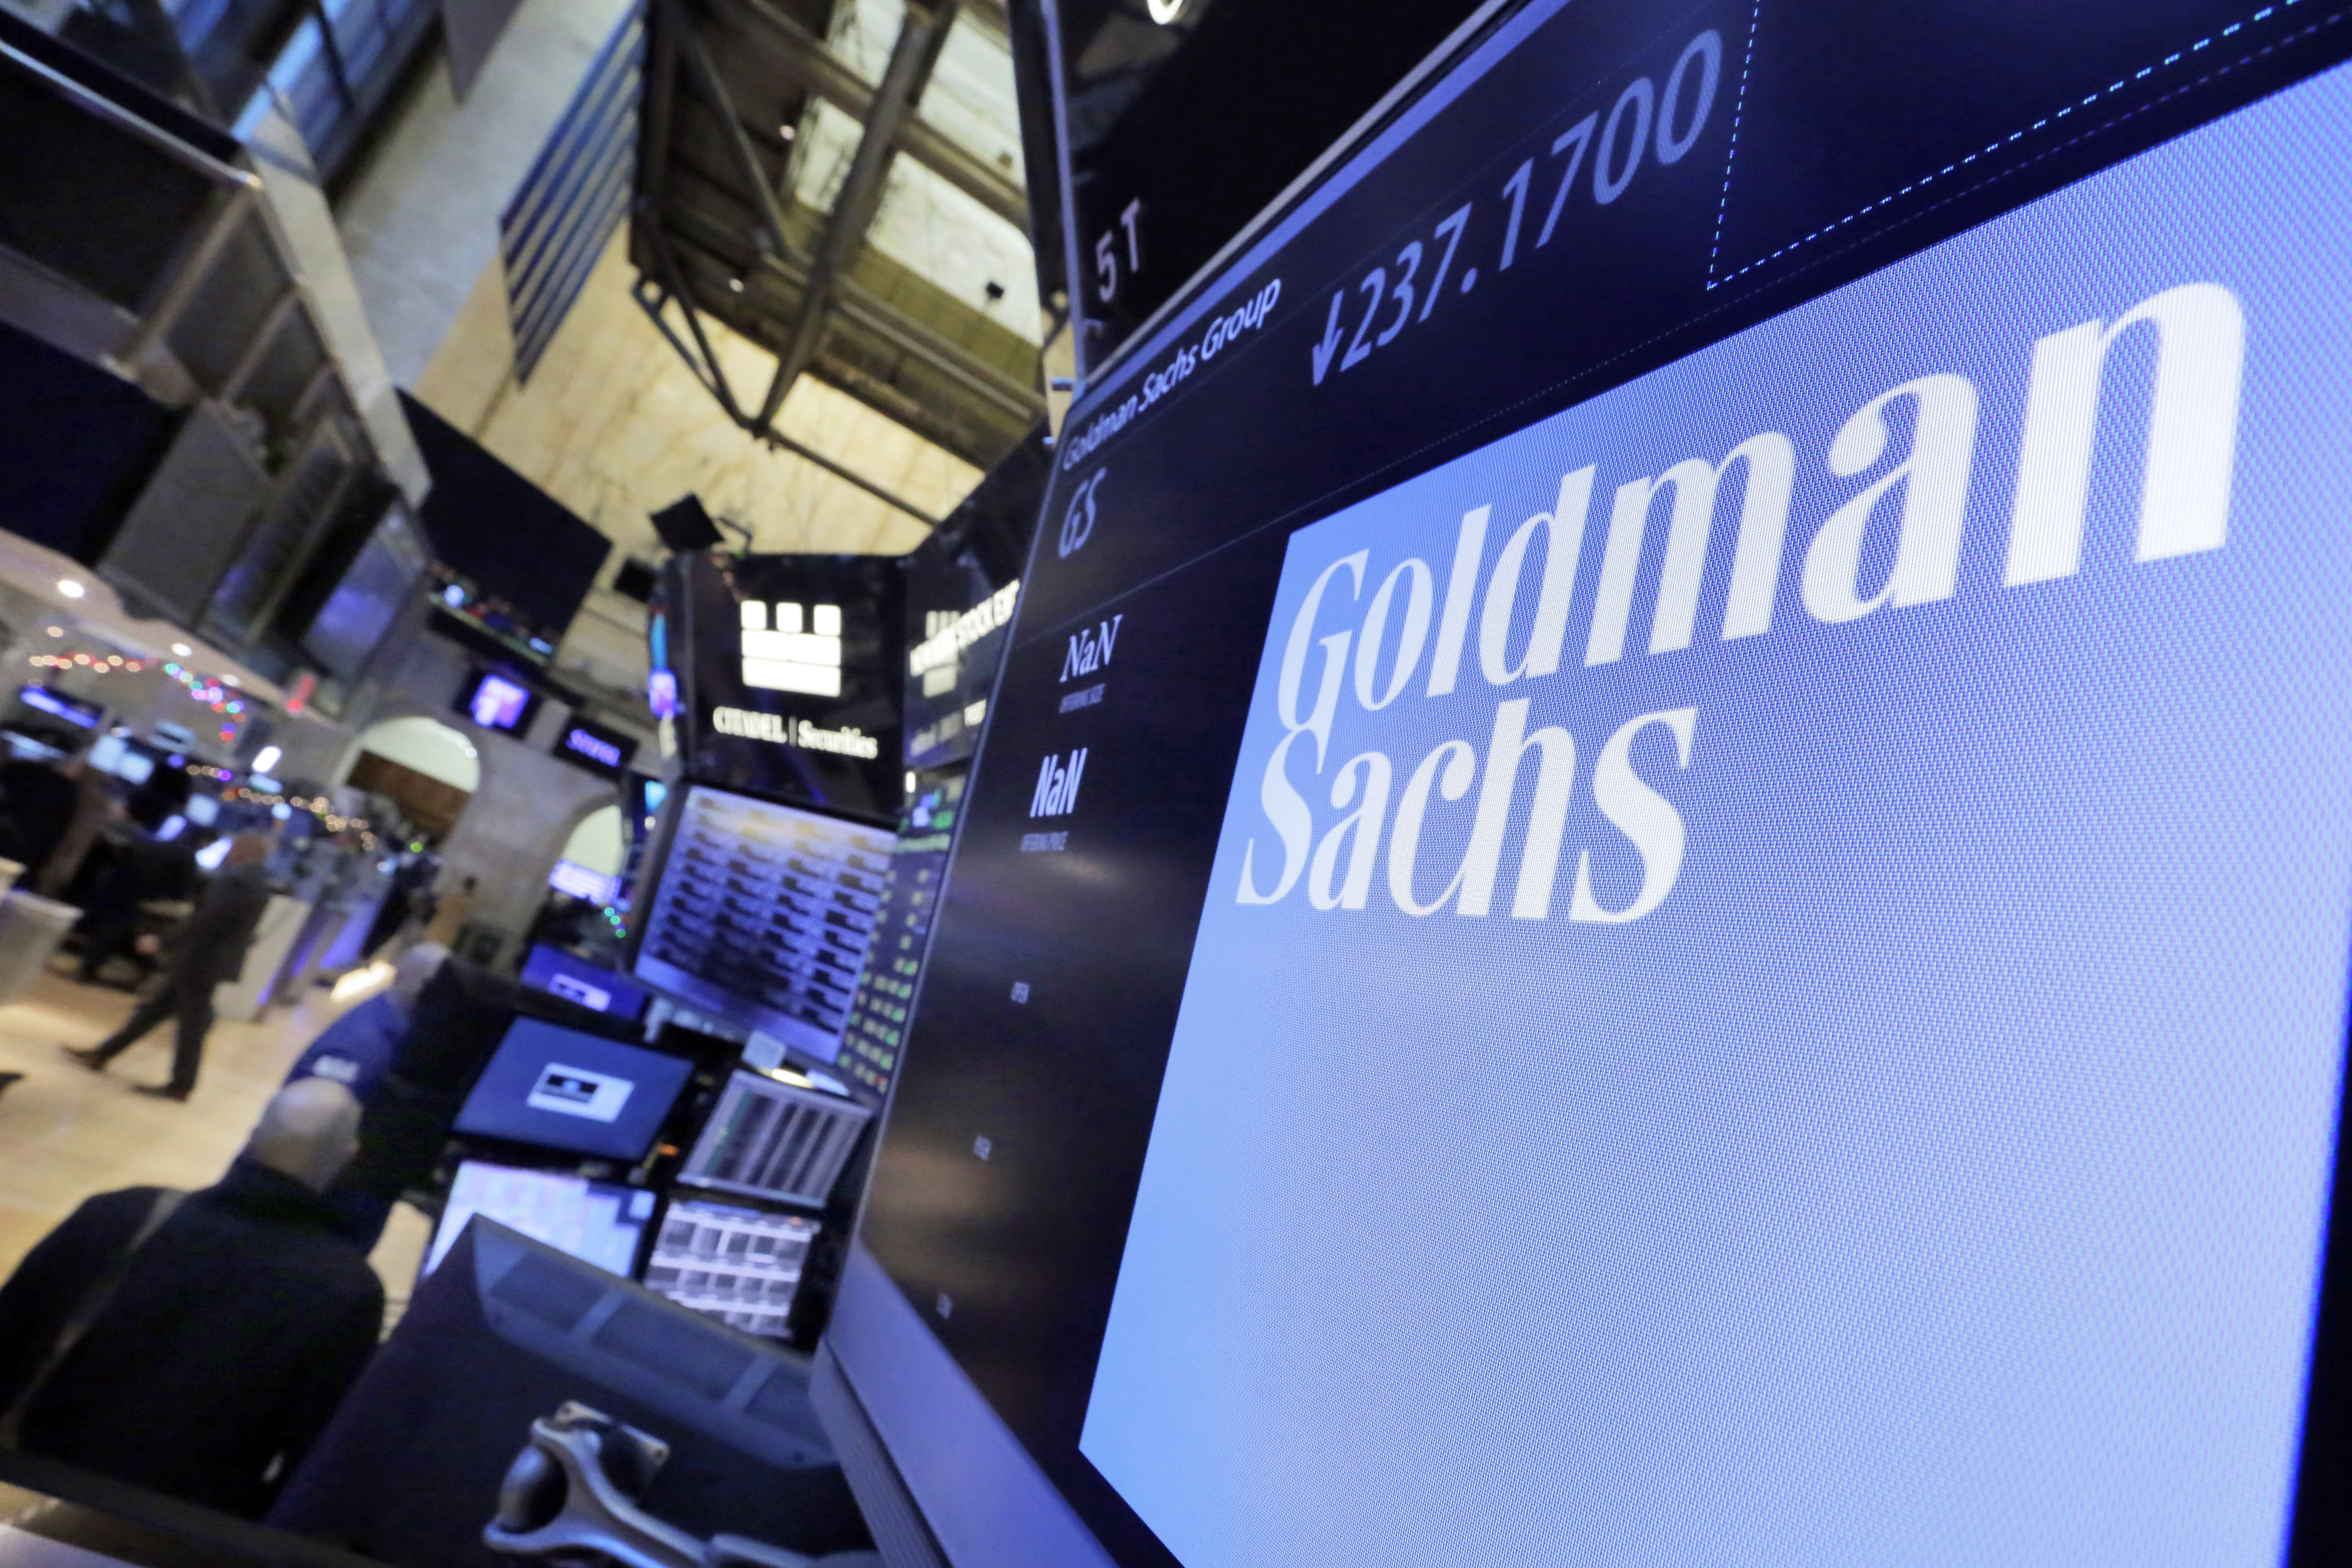 goldman sachs Learn about working at goldman sachs join linkedin today for free see who you know at goldman sachs, leverage your professional network, and get hired.